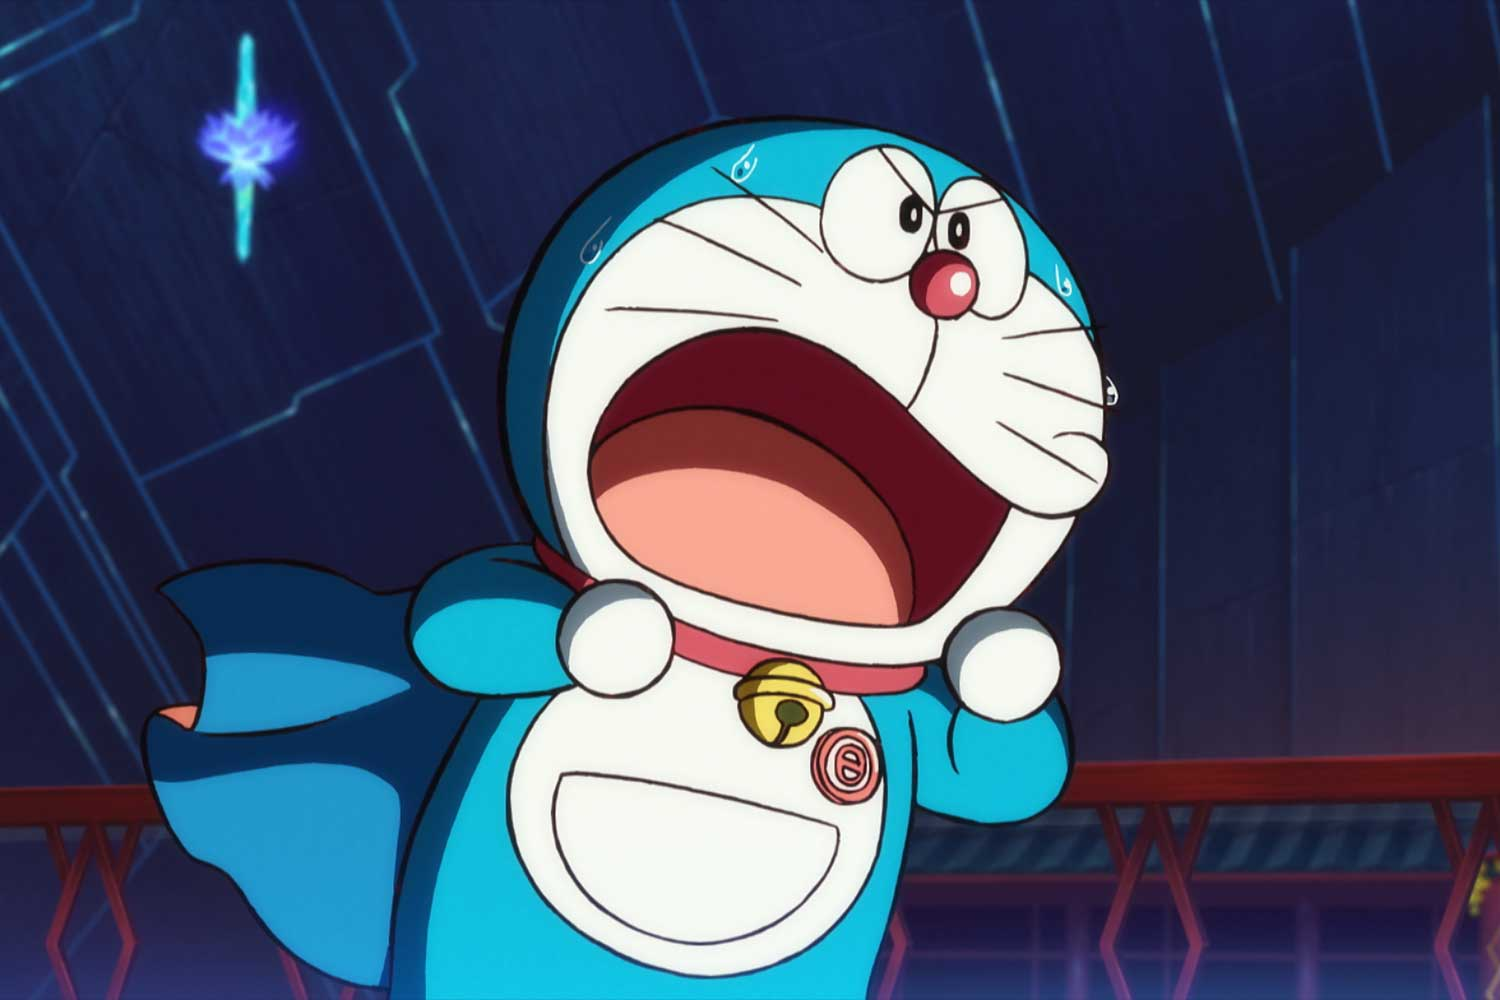 the continuing adventures of doraemon